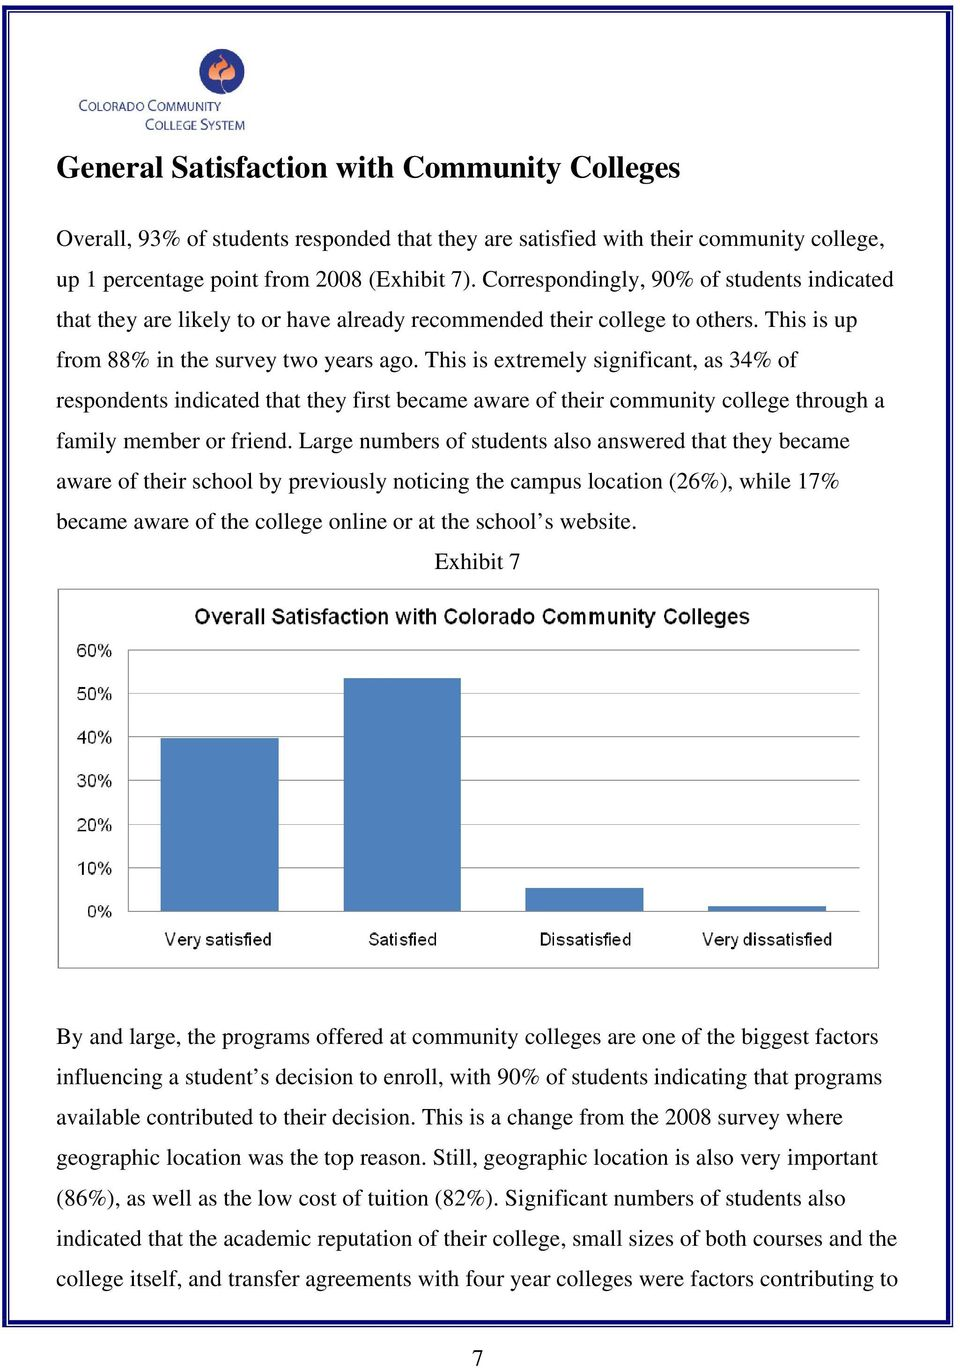 This is extremely significant, as 34% of respondents indicated that they first became aware of their community college through a family member or friend.